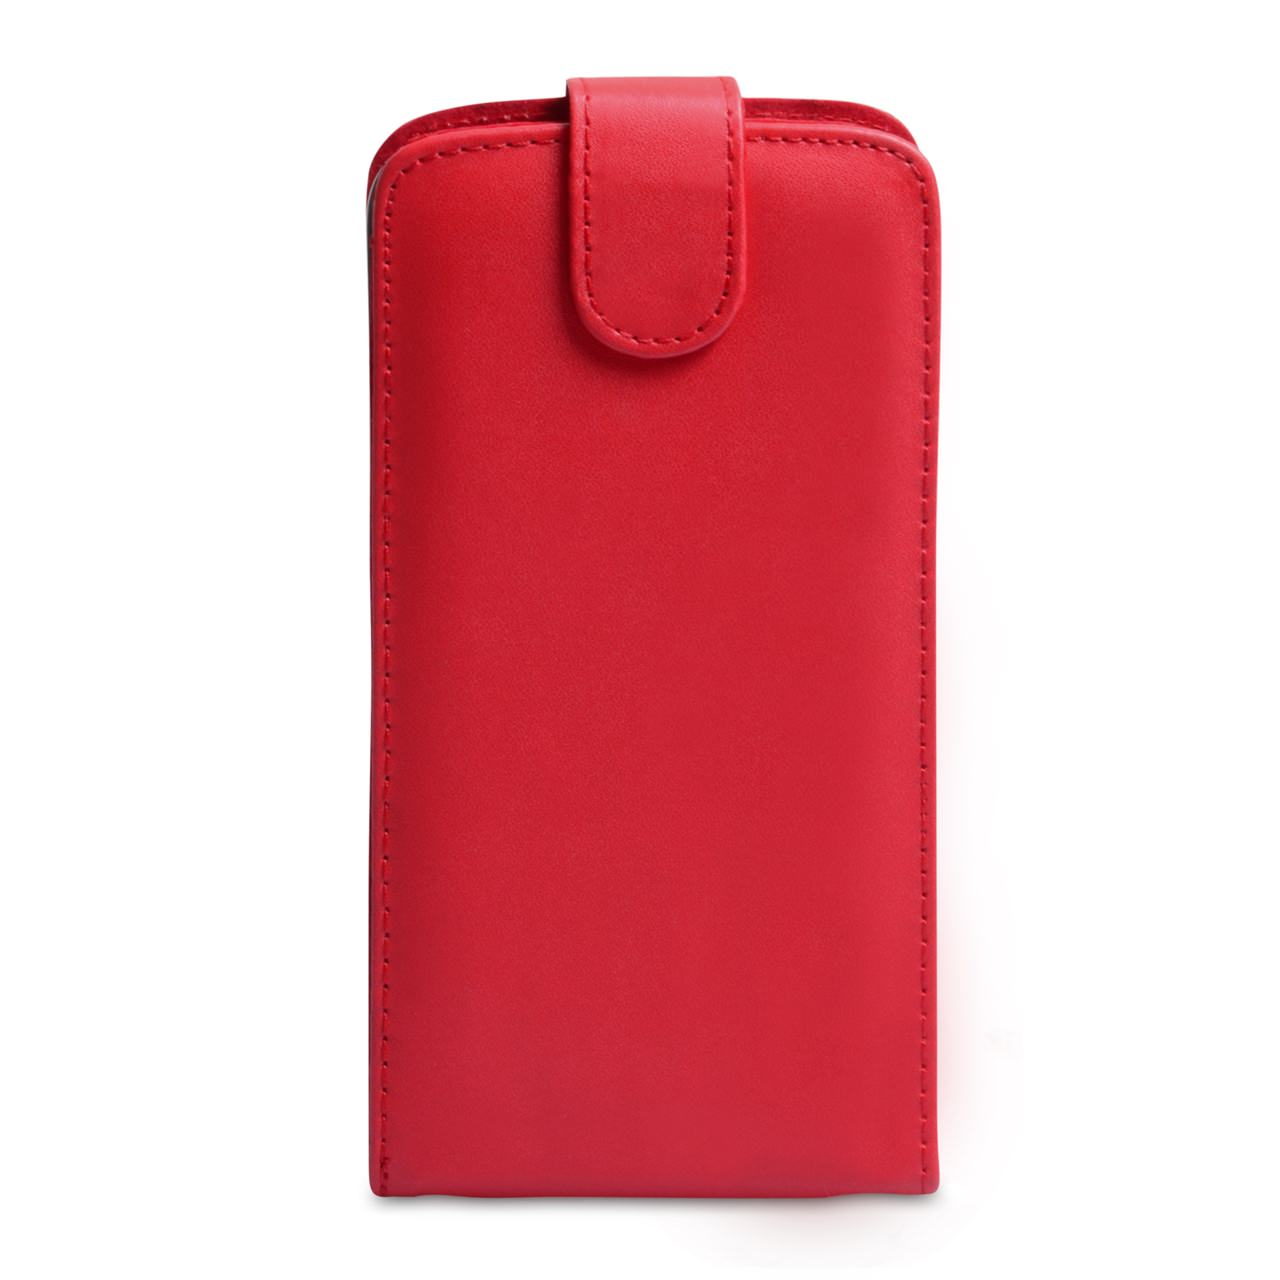 YouSave Samsung Galaxy Mega 6.3 Leather Effect Flip Case - Red